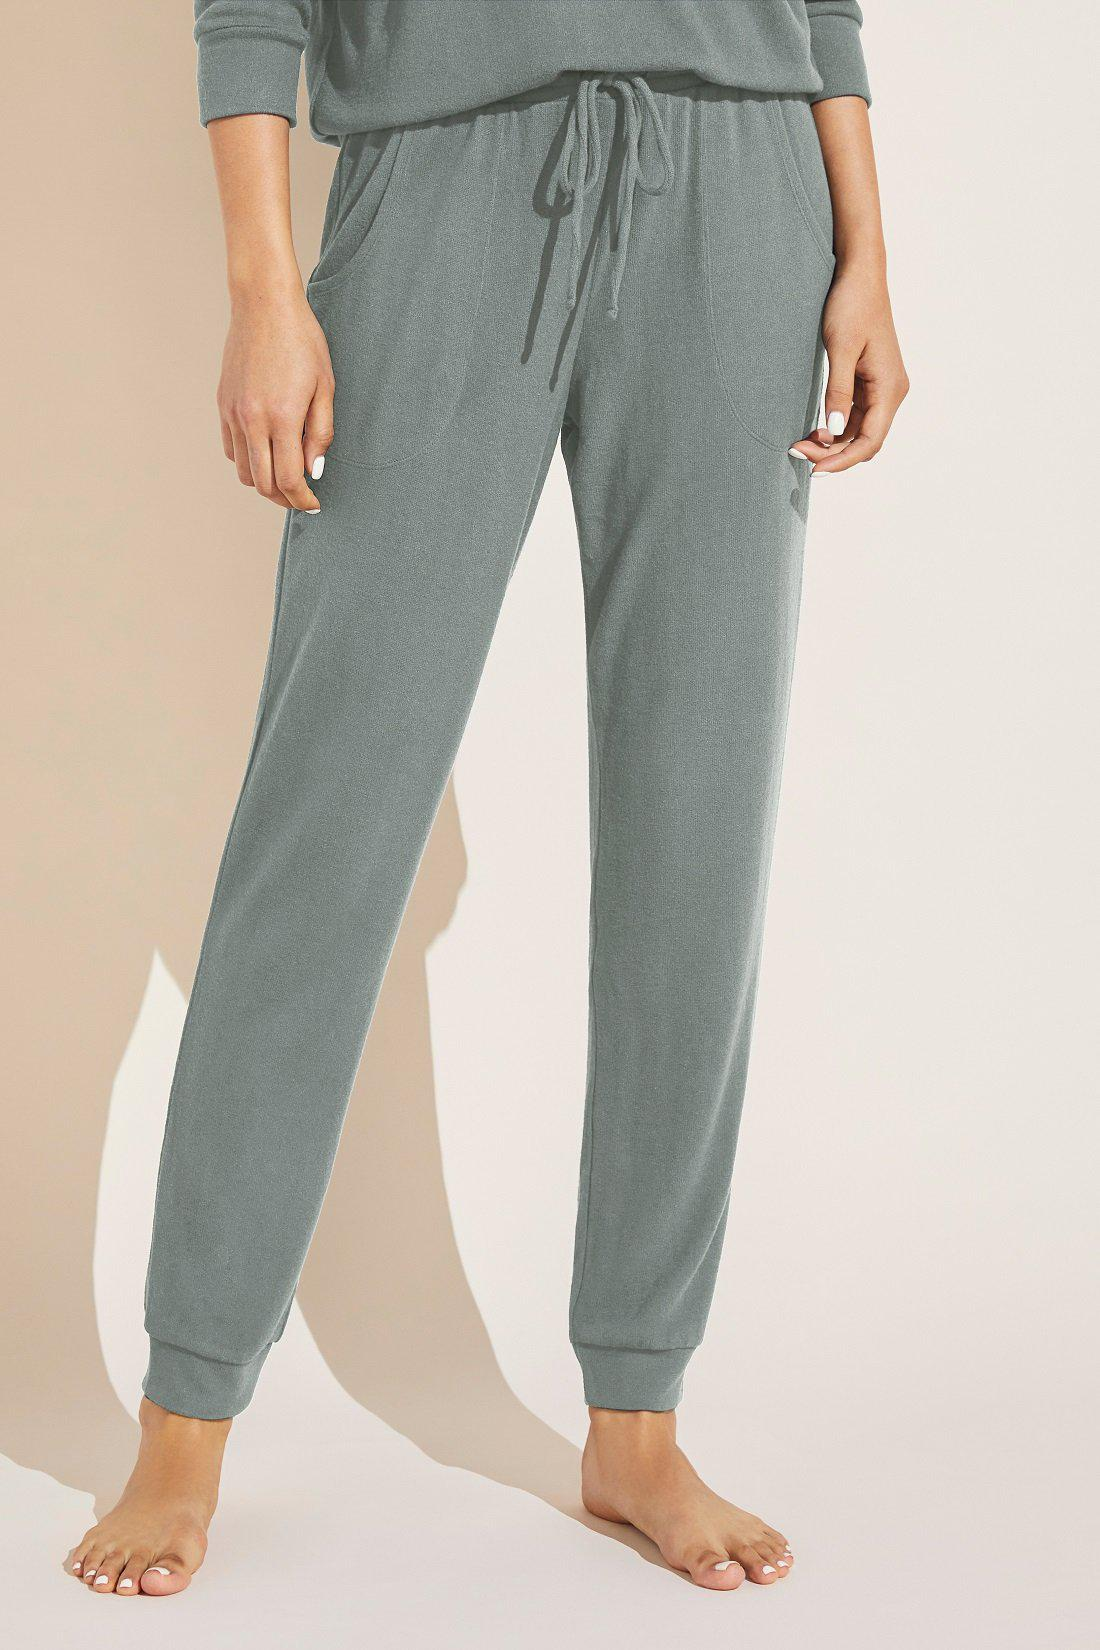 Cozy Time Brushed Modal Pant - Willow Green